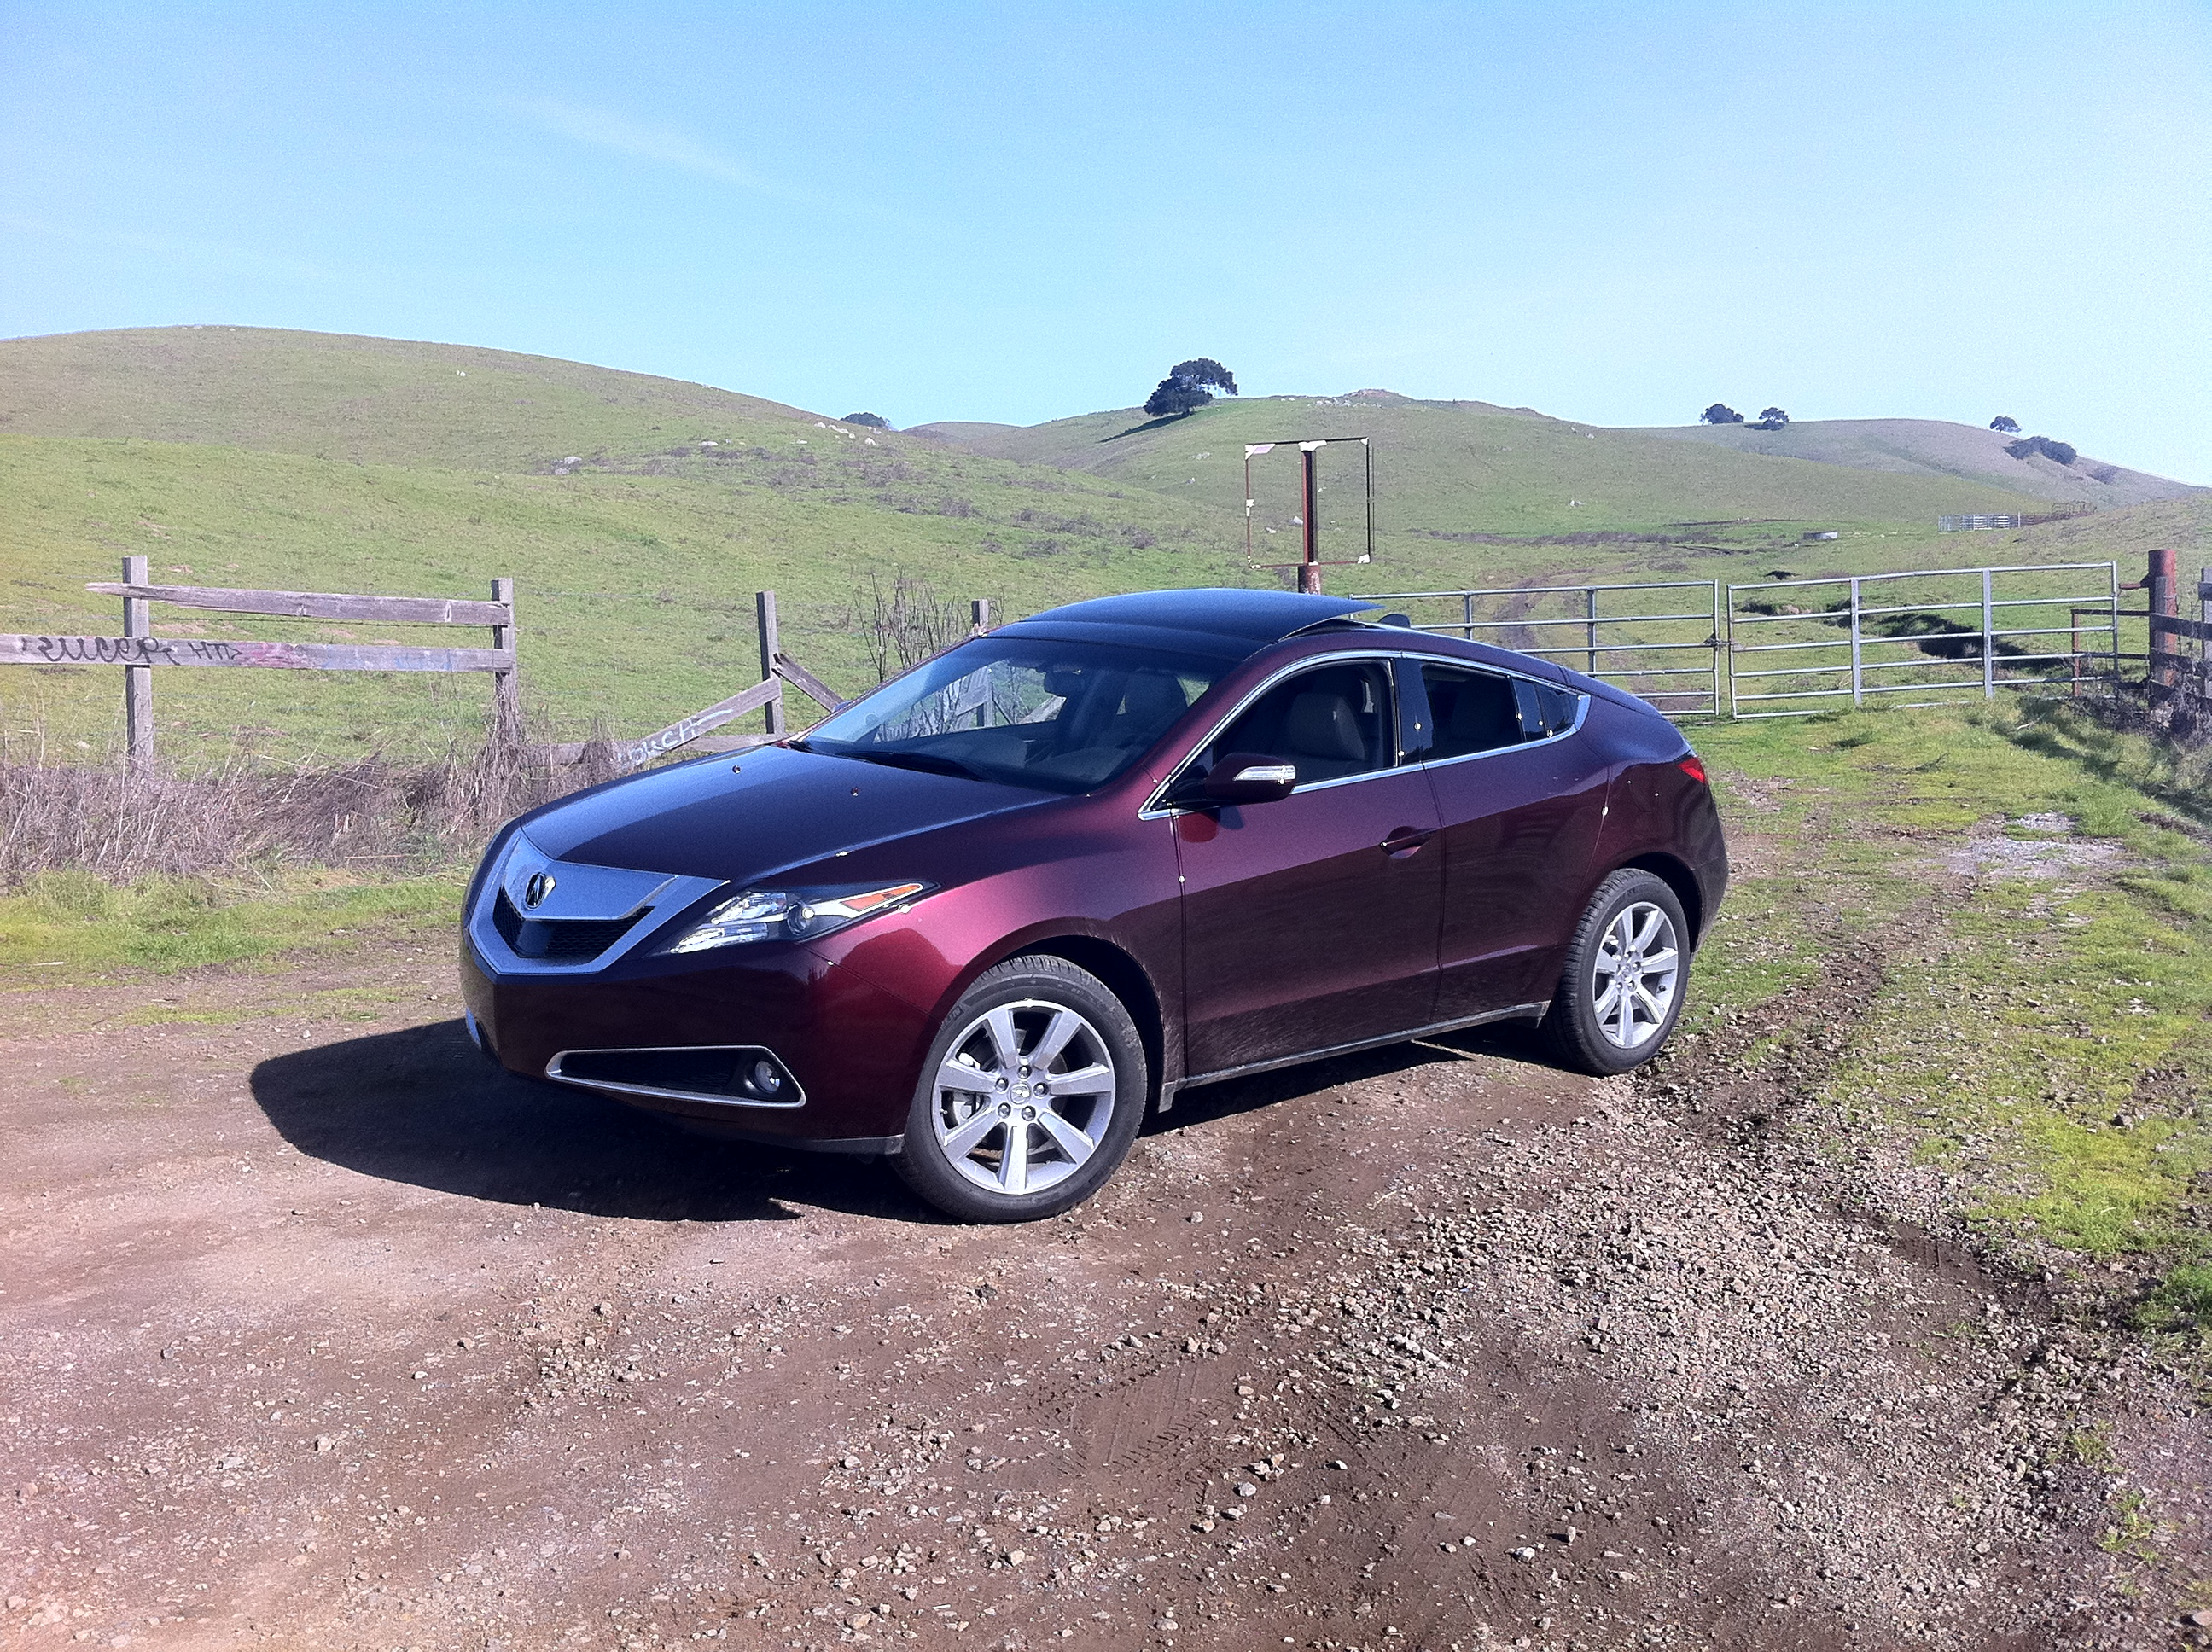 2011 acura zdx review defying categorization. Black Bedroom Furniture Sets. Home Design Ideas